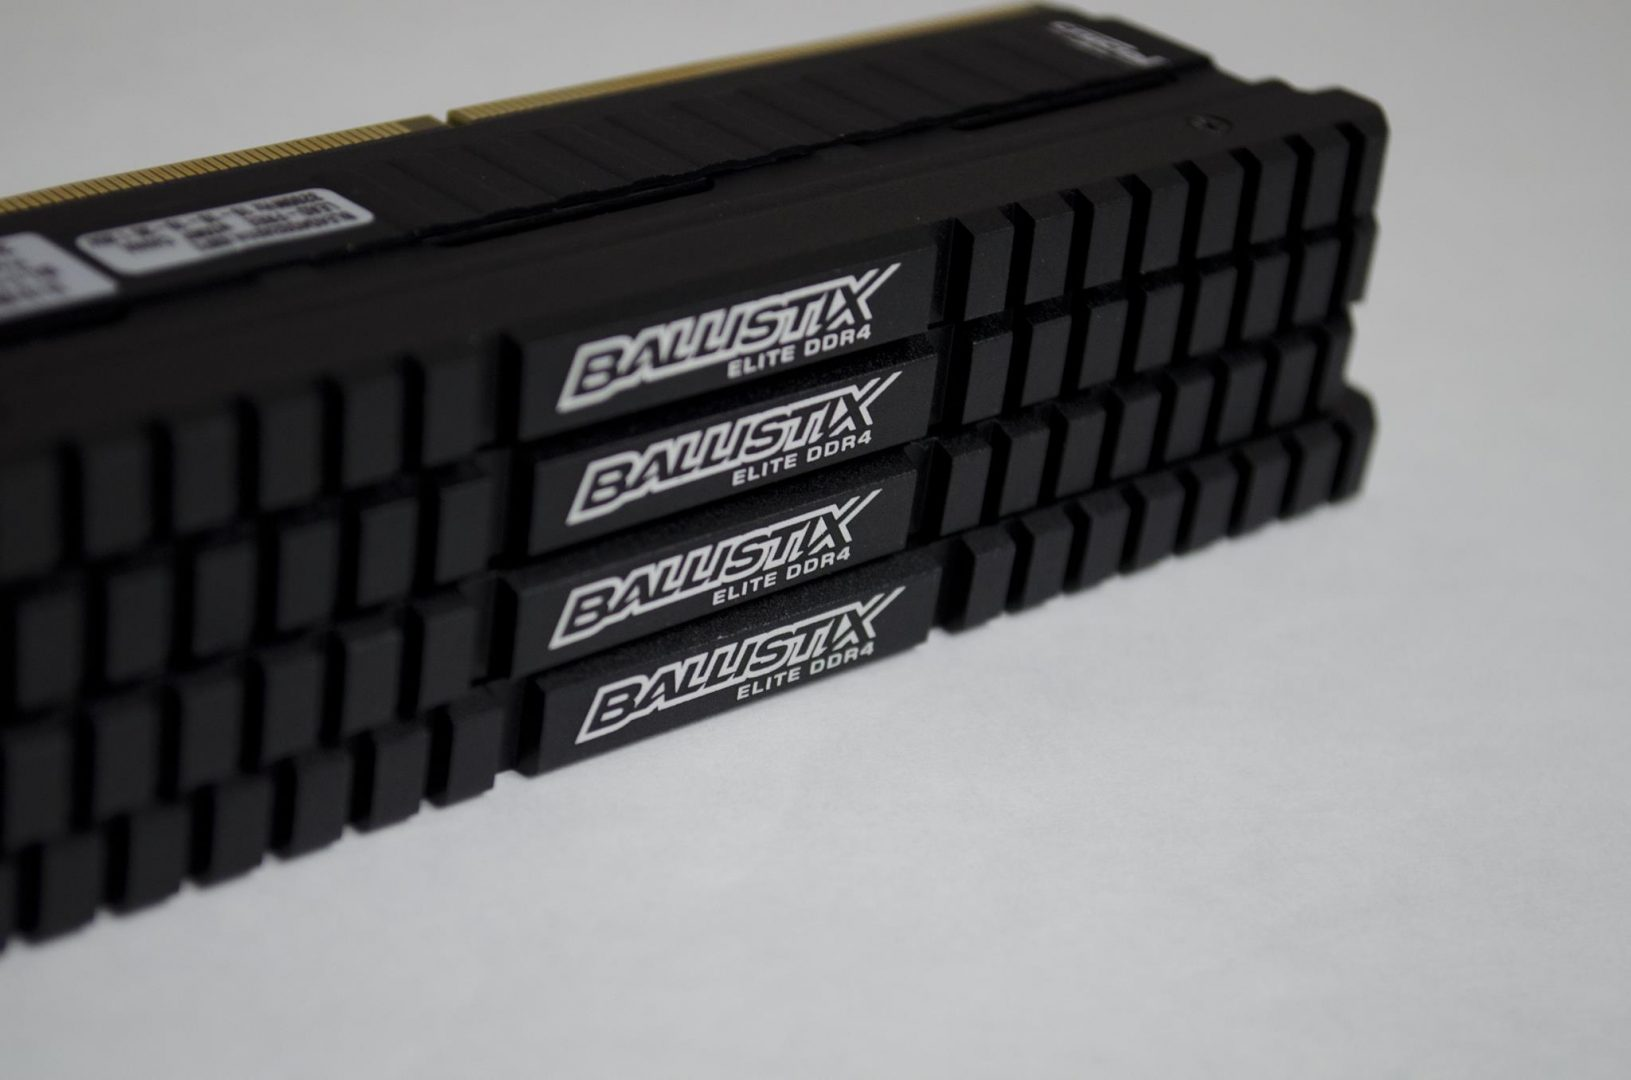 crucial ballistix elite ddr4 3200mhz ram review_4